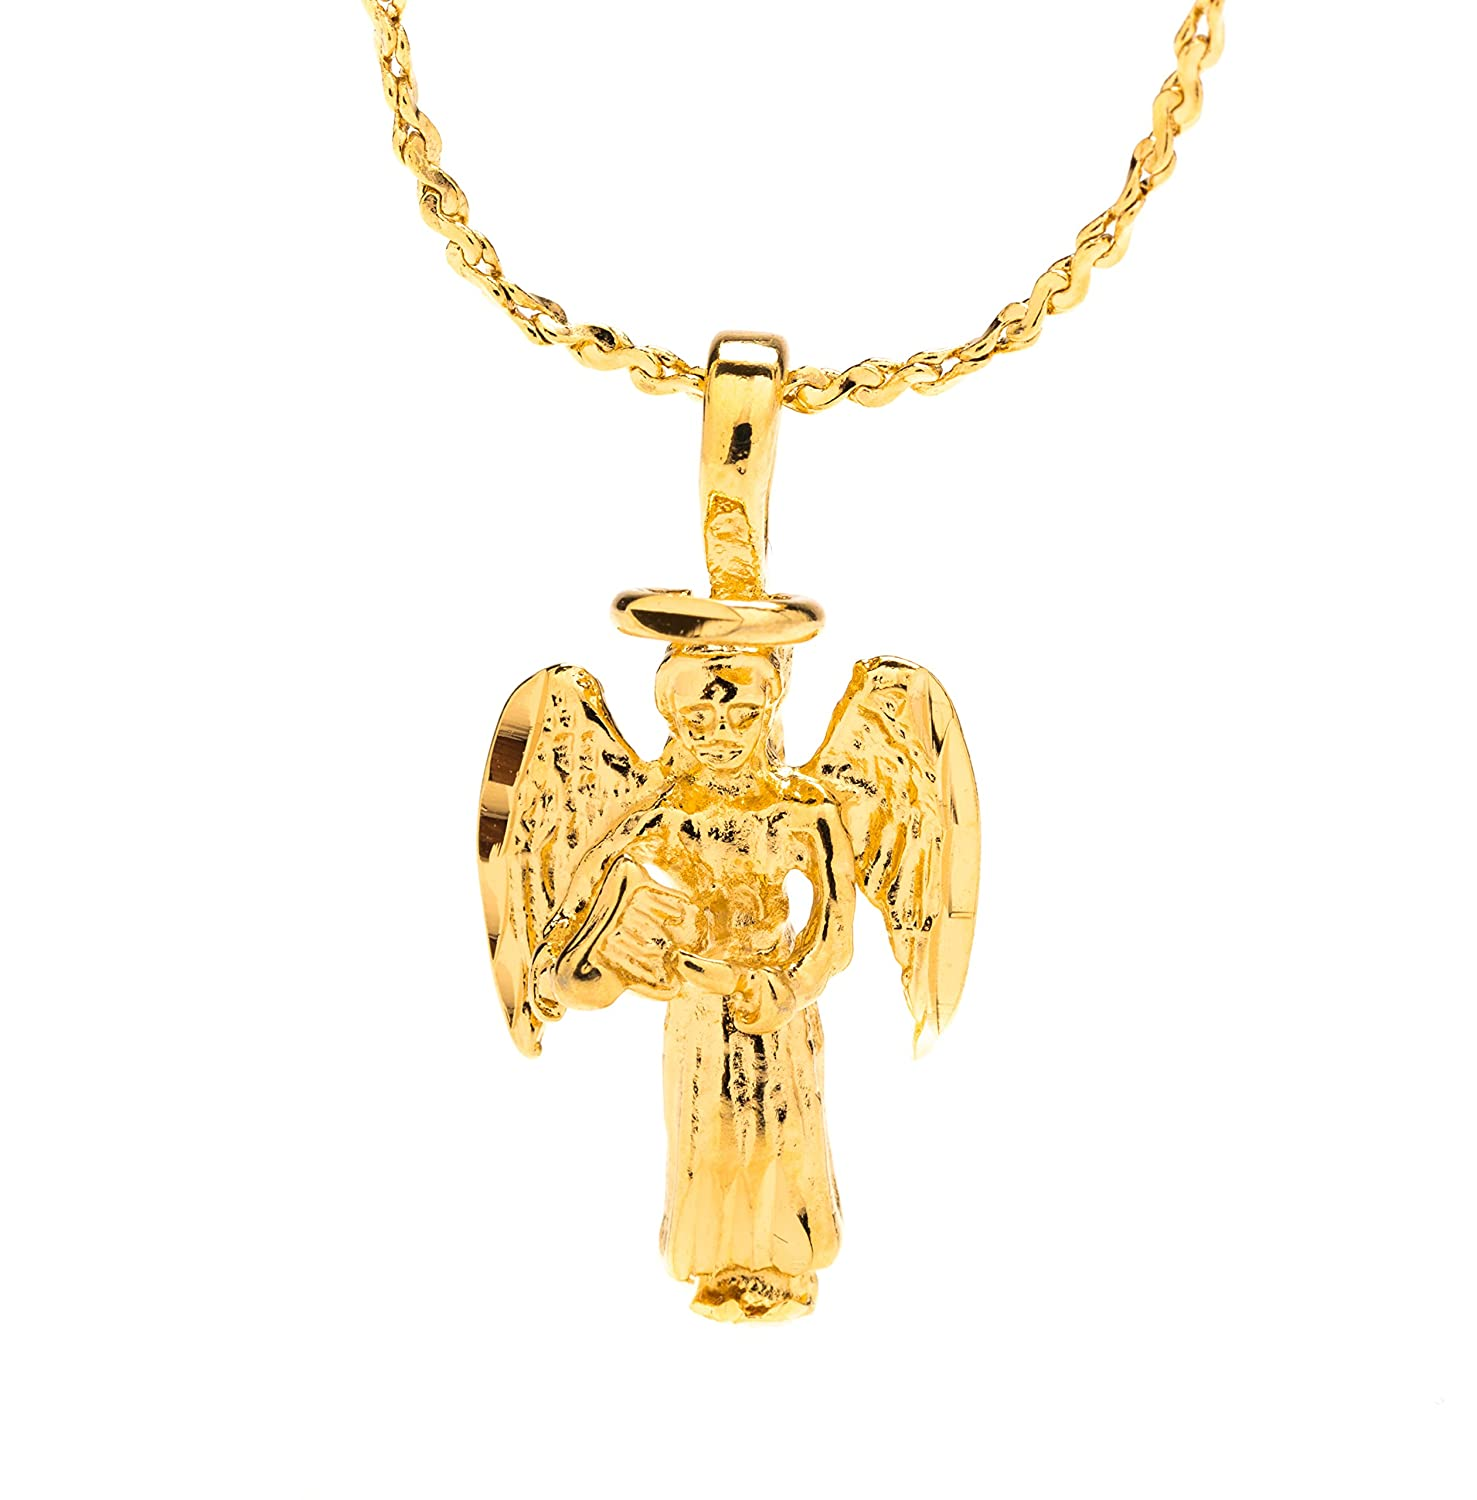 730a6dbe2de1a Guardian Angel, Pendant Necklace, Small, 24K Gold Premium Overlay Fashion  Jewelry, Guaranteed for Life, 18 Inch Chain